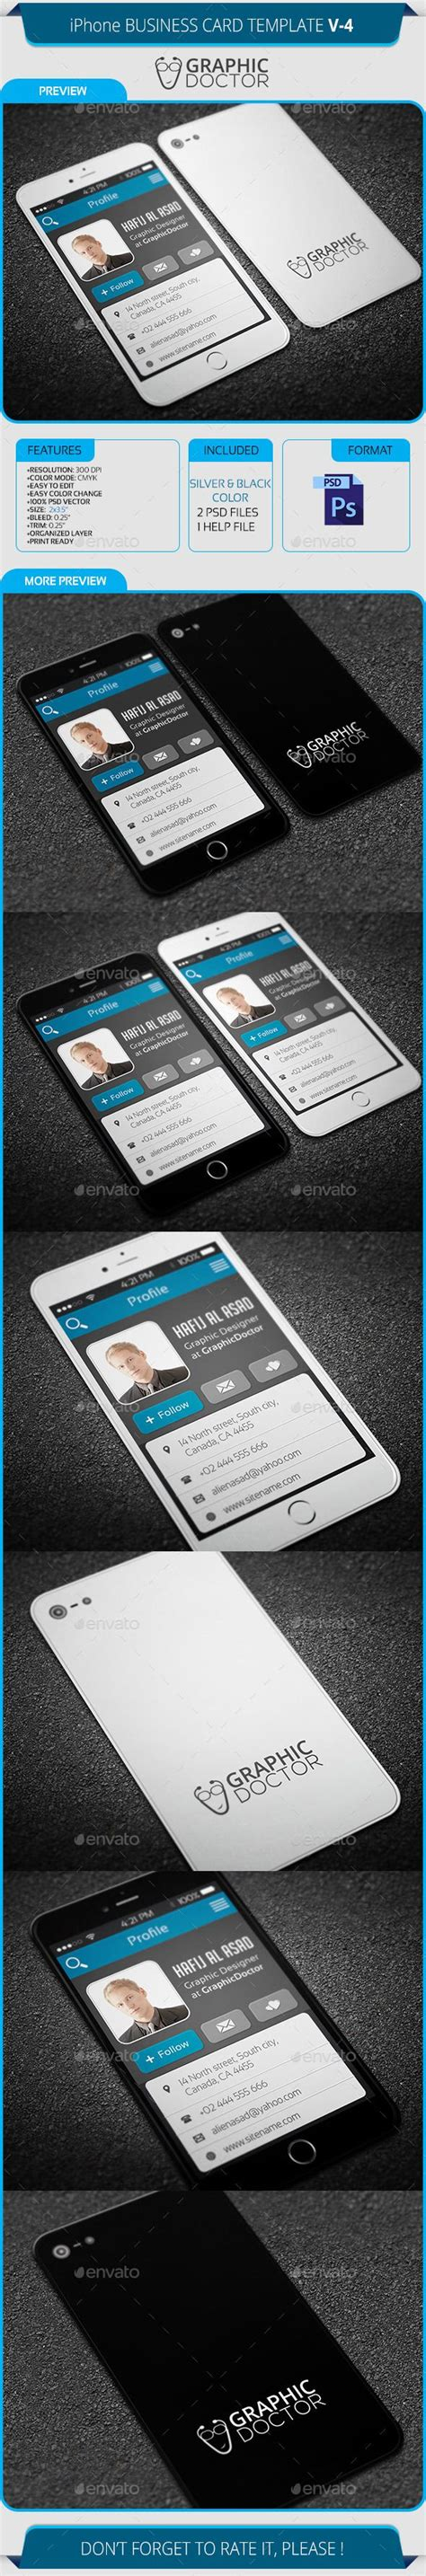 iphone 7 business card template iphone business card template v 4 card templates